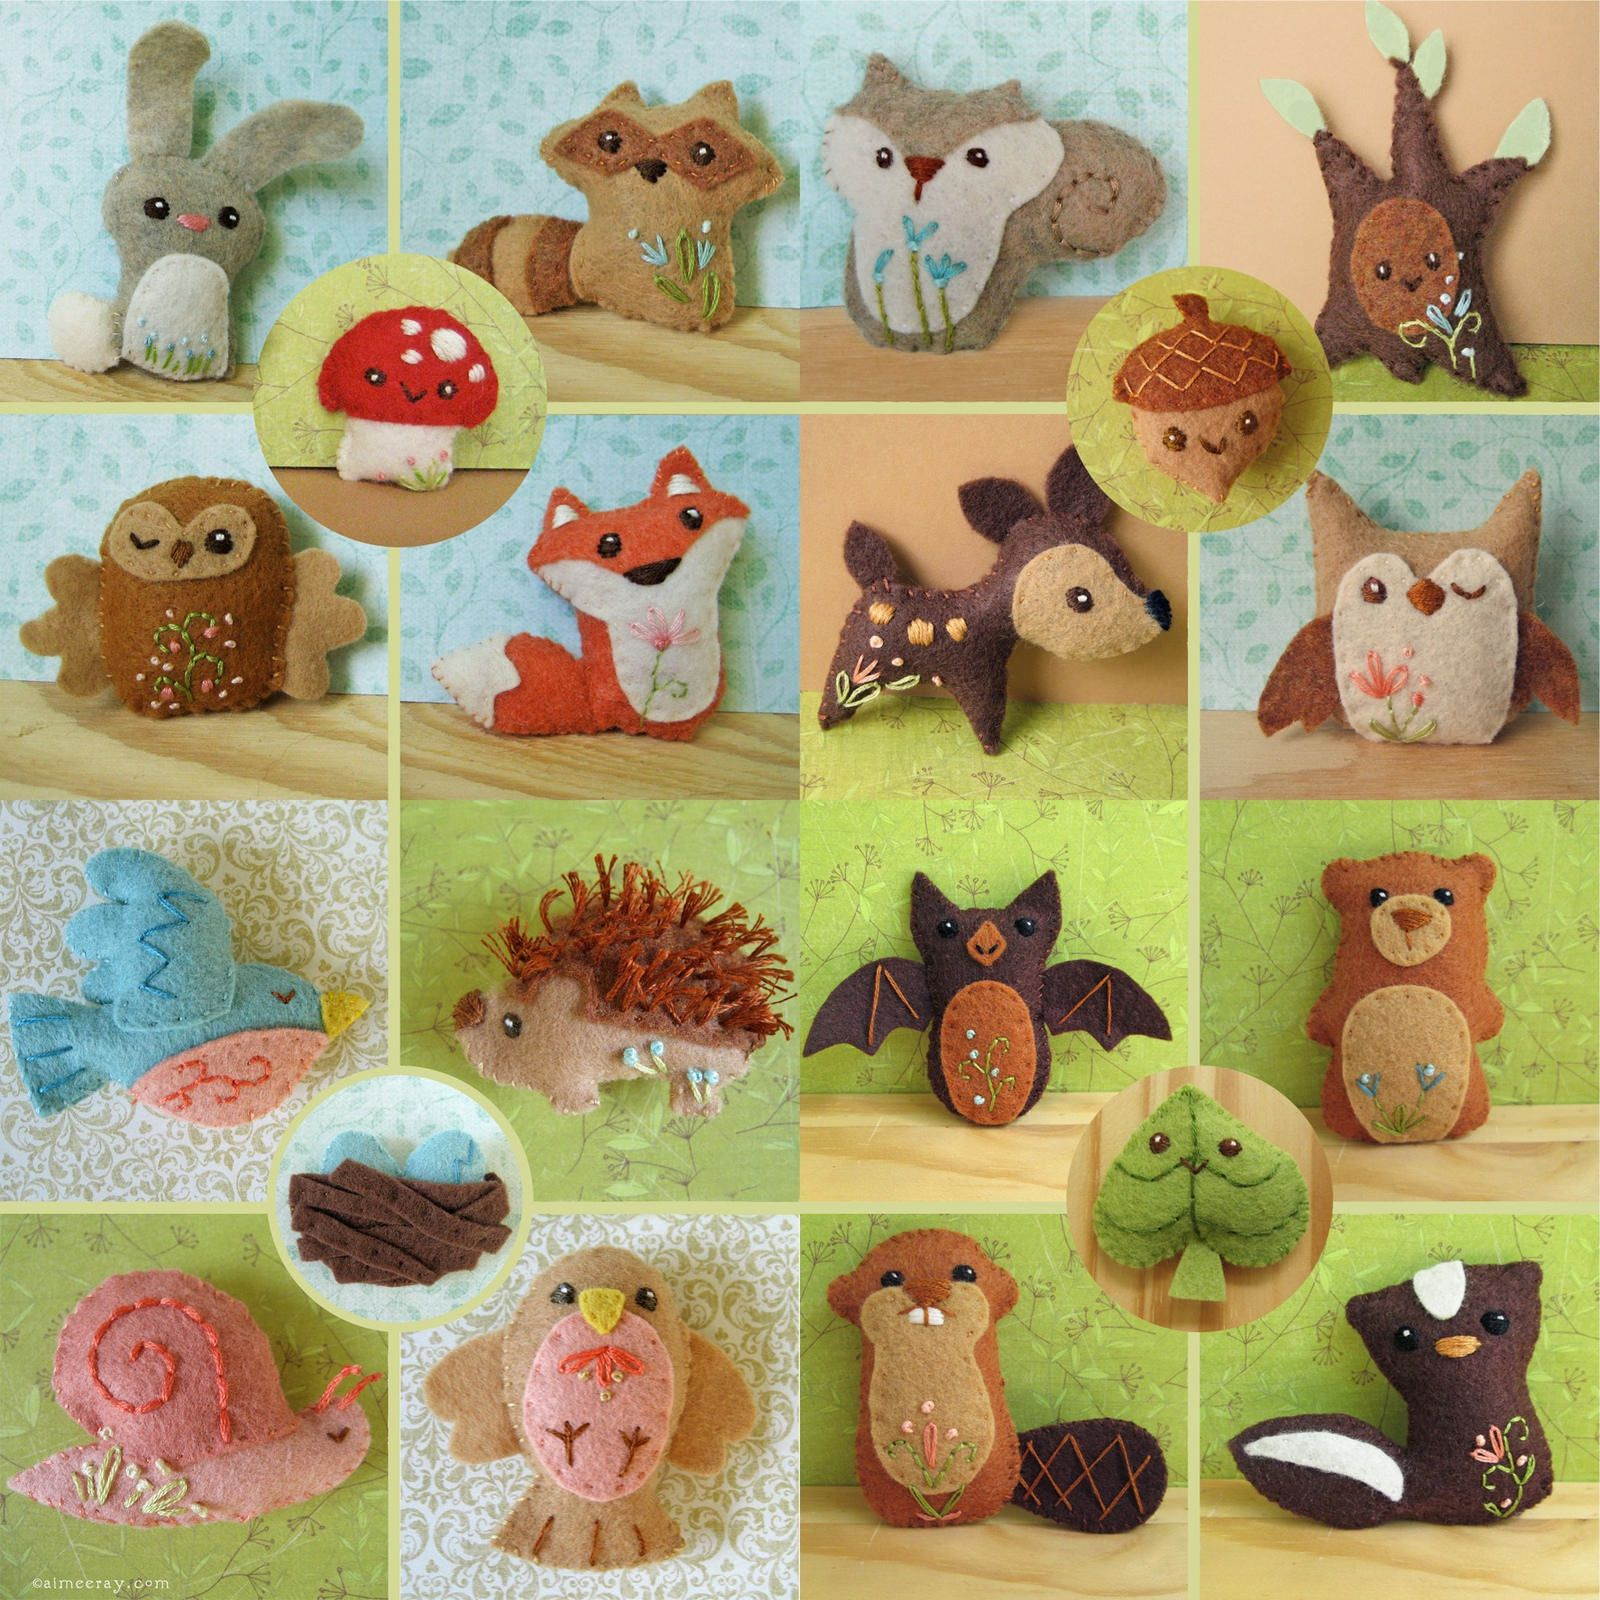 All 25 woodland creatures from my 4 sewing patterns! | Kalender